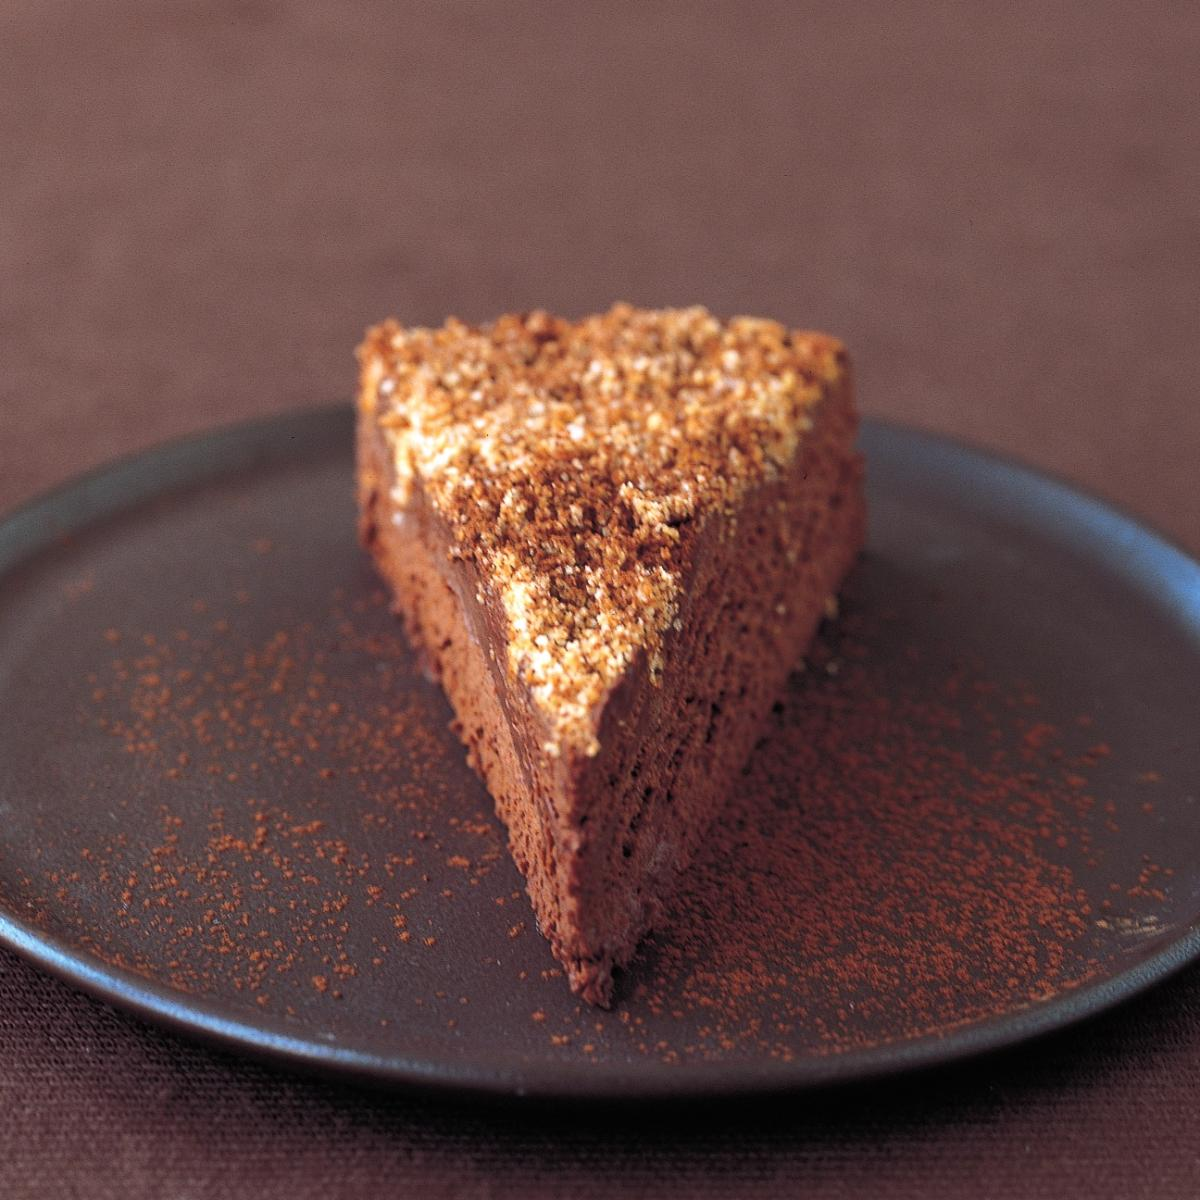 A picture of Delia's Truffle Torte recipe